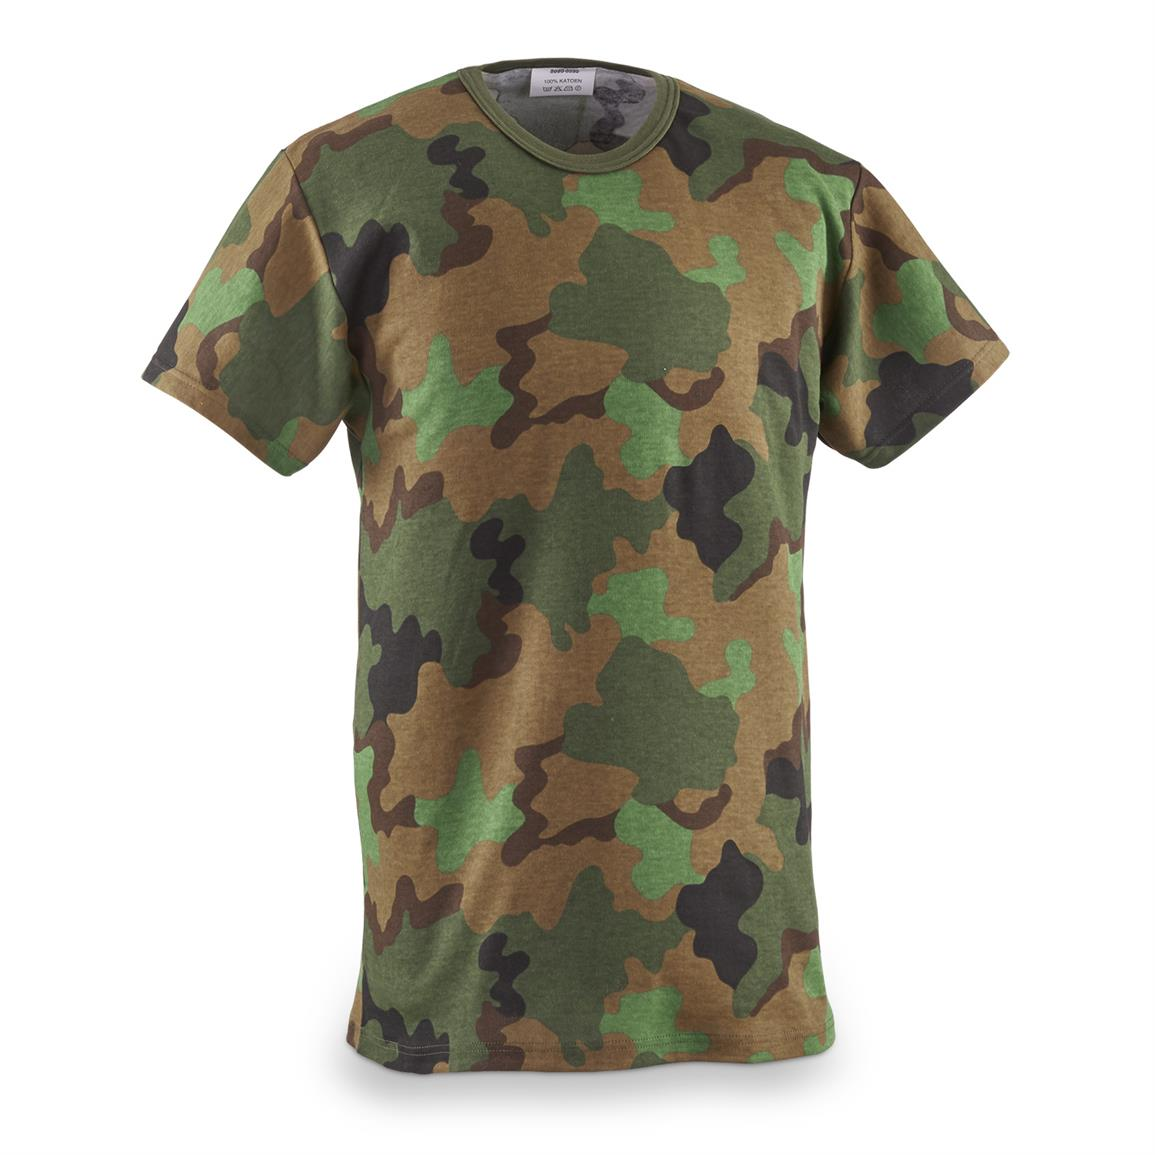 Dutch Military Issue Jungle Camo T-Shirt, New